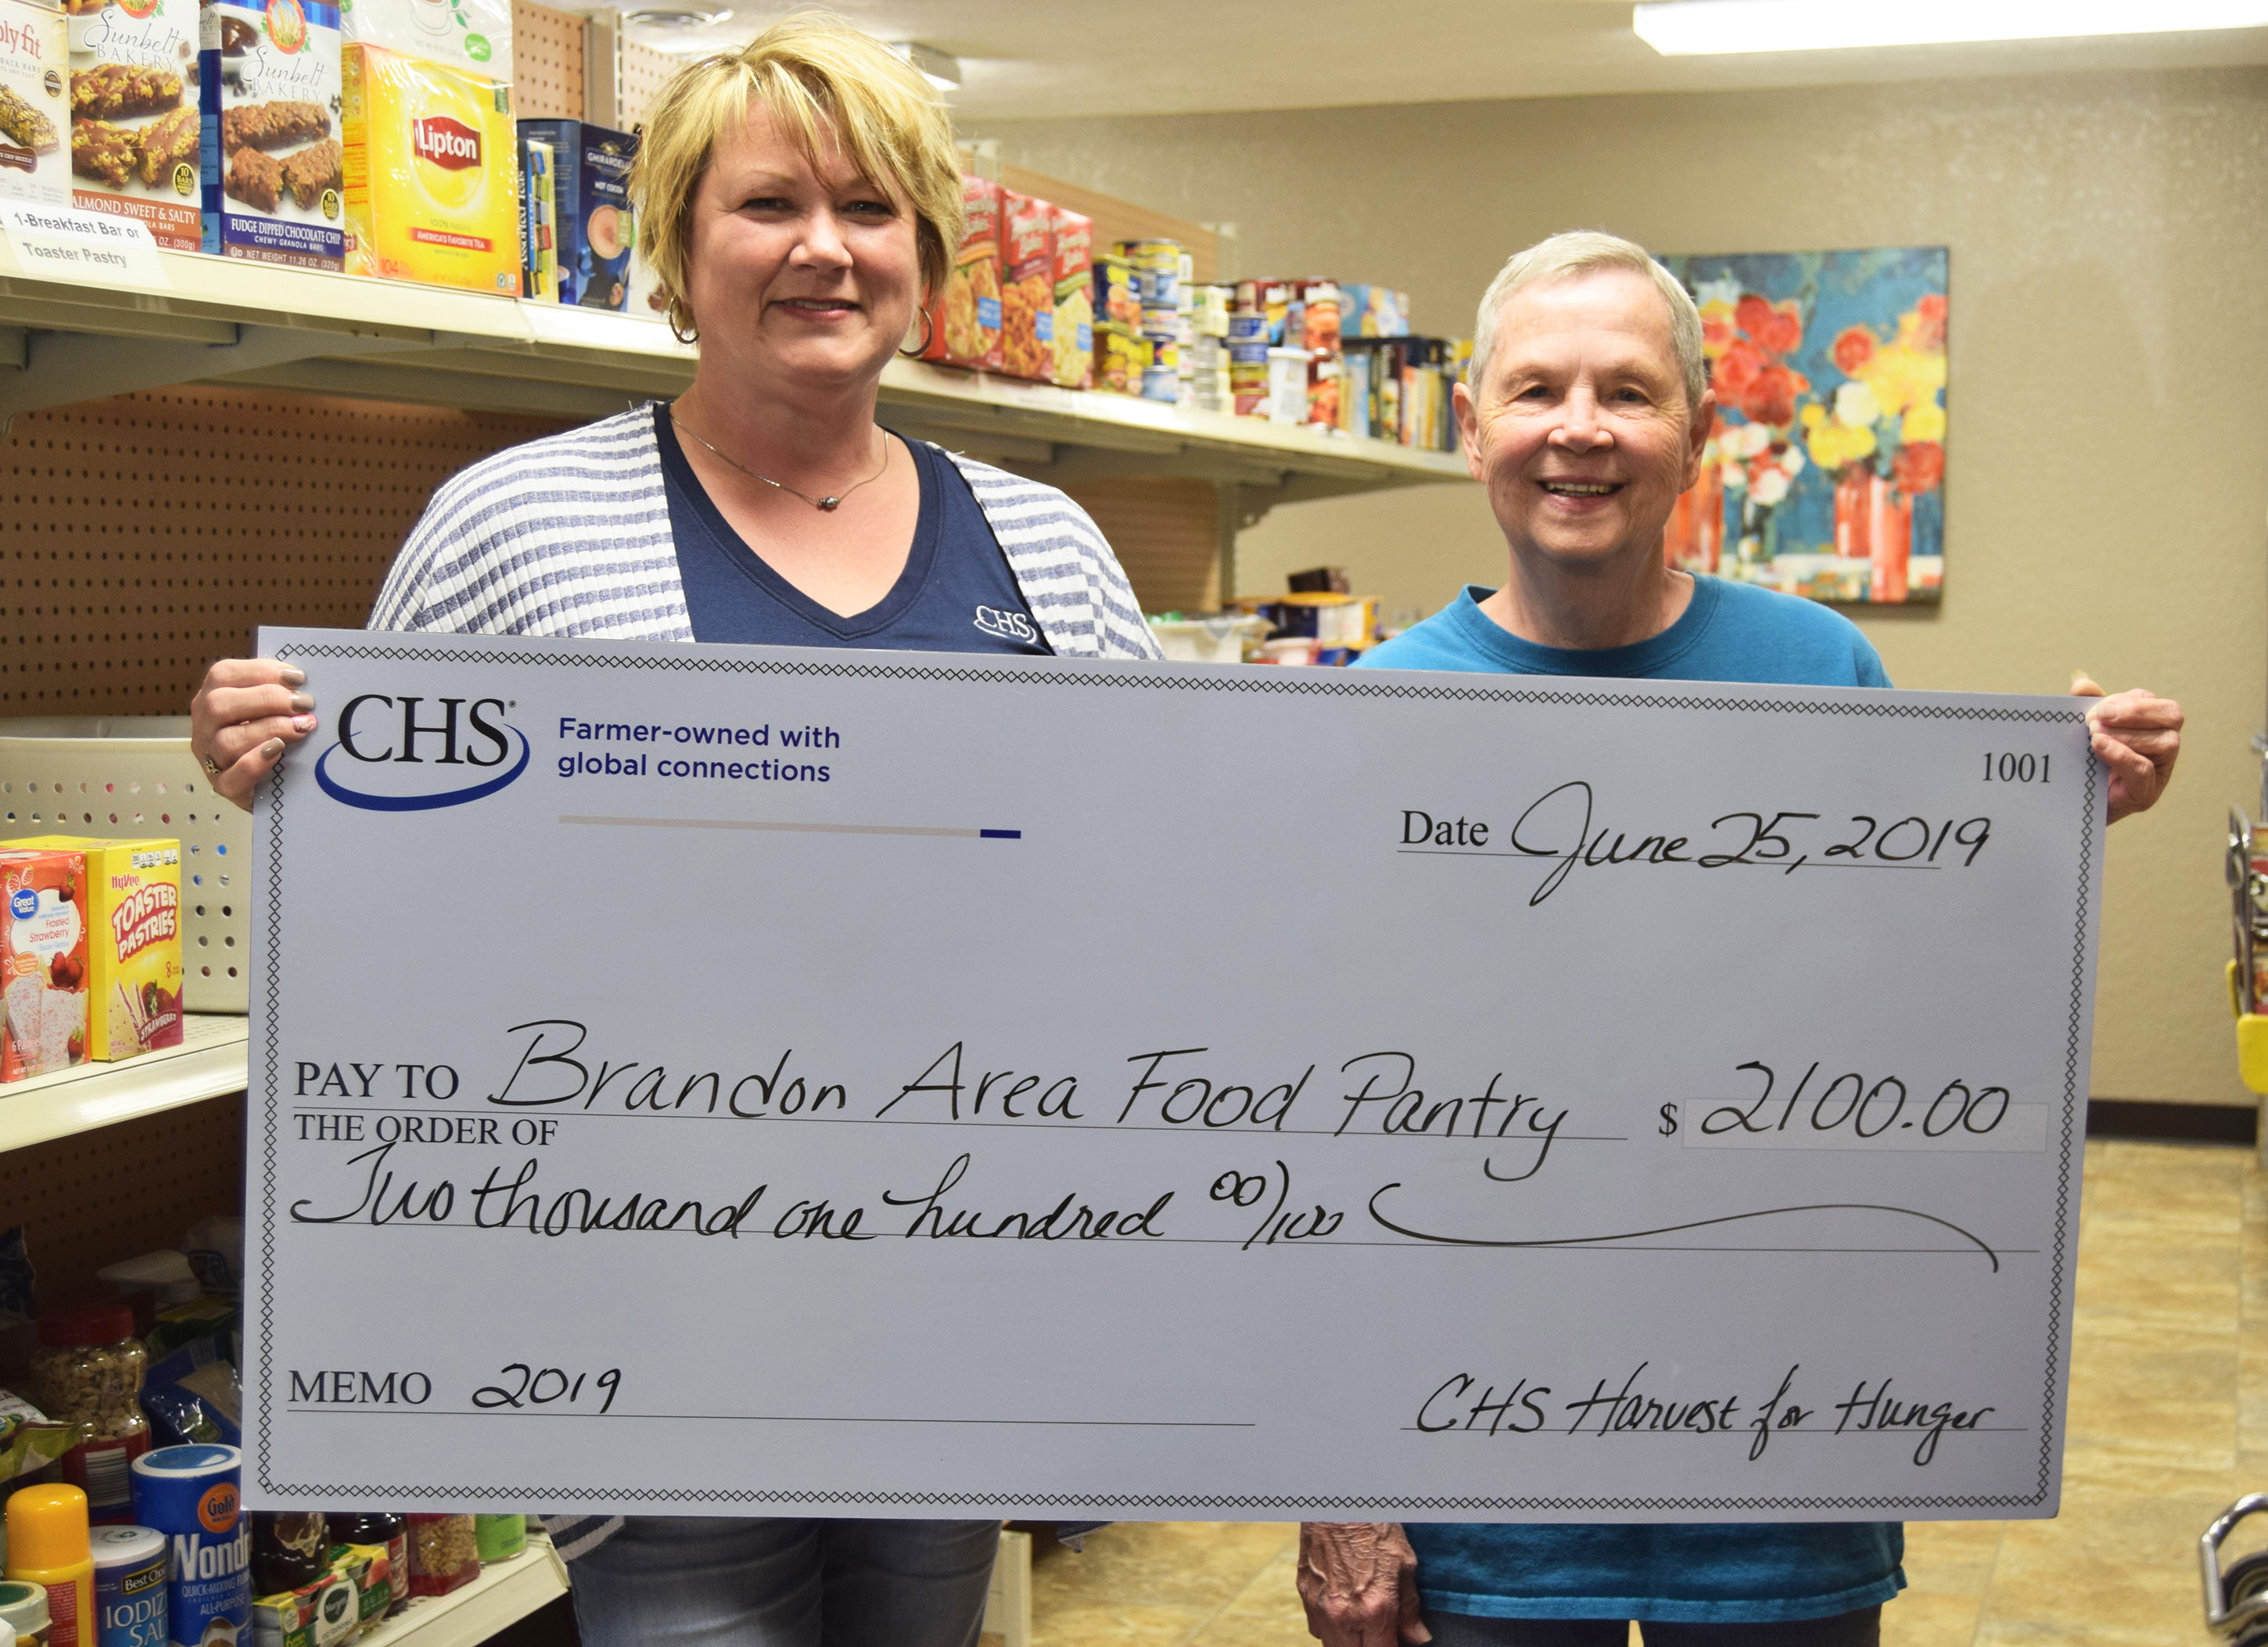 "<span class=""s1"" style=""letter-spacing: -0.1px;"">Diana Nelson (left), CHS administrative assistant, delivers a check to Linda Weber at the Brandon Area Food Pantry for $2,100.</span>	<span class=""s1"" style=""letter-spacing: -0.1px;"">Working together, CHS joined the fight against rural hunger through the cooperative's annual Harvest for Hunger food, funds and grain drive. The campaign gathered more than $500,000 and 94,959 pounds of food. Locally, CHS raised $48,858.36 and 309 pounds of food for local food shelves.<span class=""Apple-converted-space""> </span></span>	<span class=""s1"" style=""letter-spacing: -0.1px;"">Since 2011, CHS Country Operations, a division of CHS, has gathered money and food for local and regional food shelves. With this year's total, the cooperative has now raised more than $6 million and 4.5 million pounds of food over nine years.<span class=""Apple-converted-space""> </span></span>	<span class=""s1"" style=""letter-spacing: -0.1px;"">CHS locations in southeast South Dakota, southwest Minnesota and northeast Nebraska corridor participated in the 2019 Harvest for Hunger drive held March 1-20 through a variety of fundraising activities, including raffle sales and a chili cook-off. <span class=""Apple-converted-space""> </span></span>	<span class=""s2"" style=""letter-spacing: -0.2px;"">""CHS Harvest for Hunger campaign is organized by our cooperative, but it is because of the generous contributions made by our employees, customers and community members that we can make such an impactful difference for those in need,"" says Kent Mulder, general manager.<span class=""Apple-converted-space""> </span></span>	<span class=""s2"" style=""letter-spacing: -0.2px;"">Based on the funds raised, CHS also contributed matching Harvest for Hunger campaign dollars back to local food shelves and other charitable organizations.</span><span class=""s1"" style=""letter-spacing: -0.1px;""> </span>"